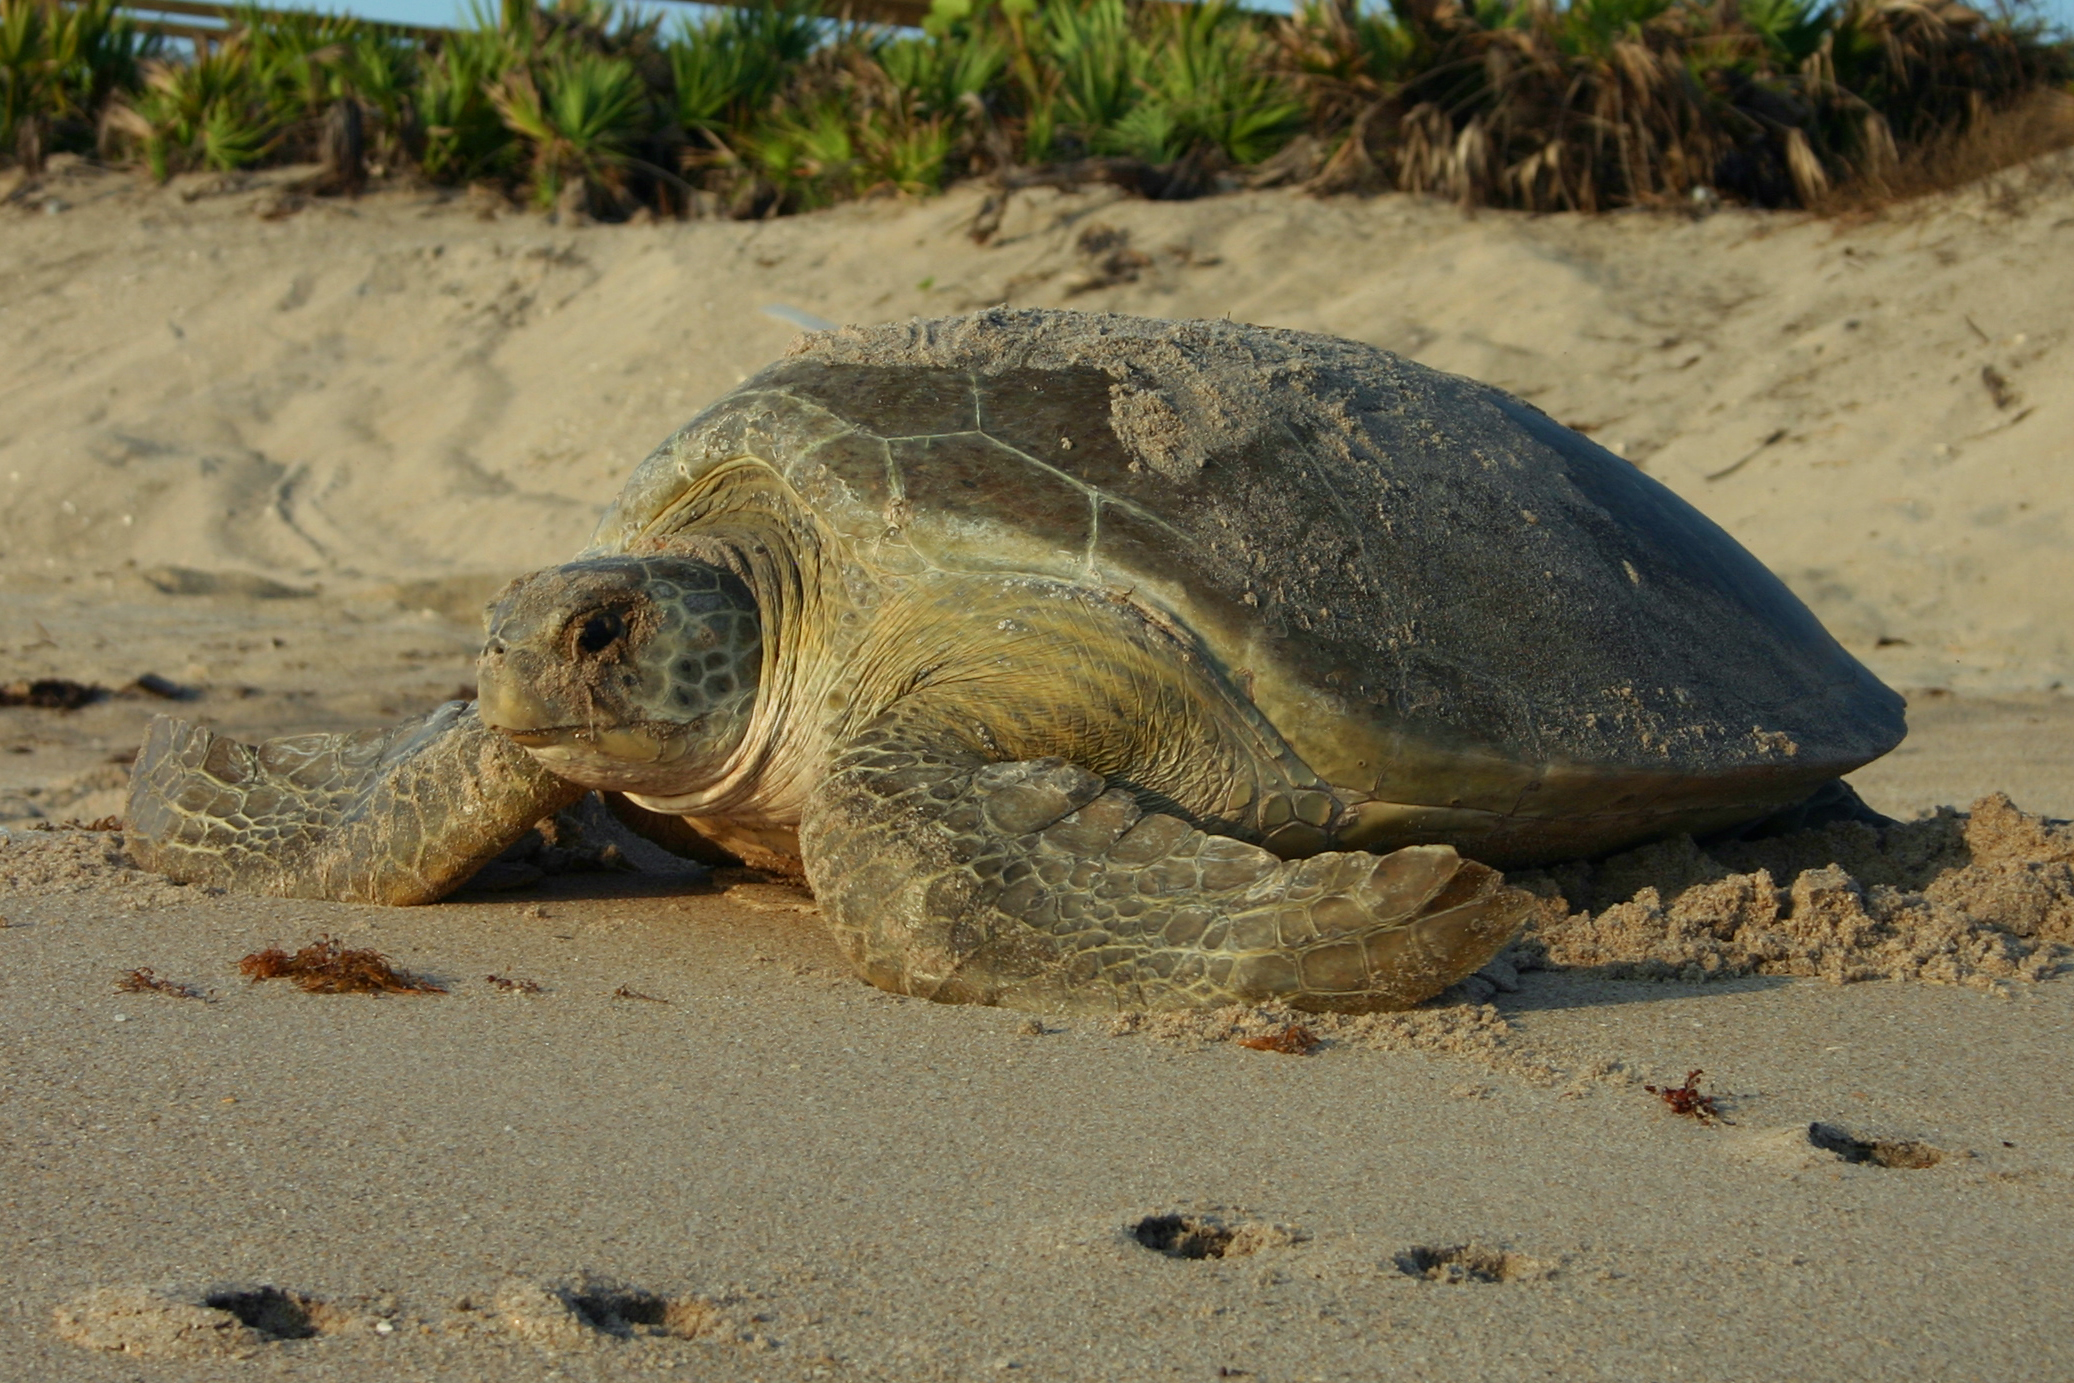 A large turtle sits on a beach. Image: Florida Fish and Wildlife